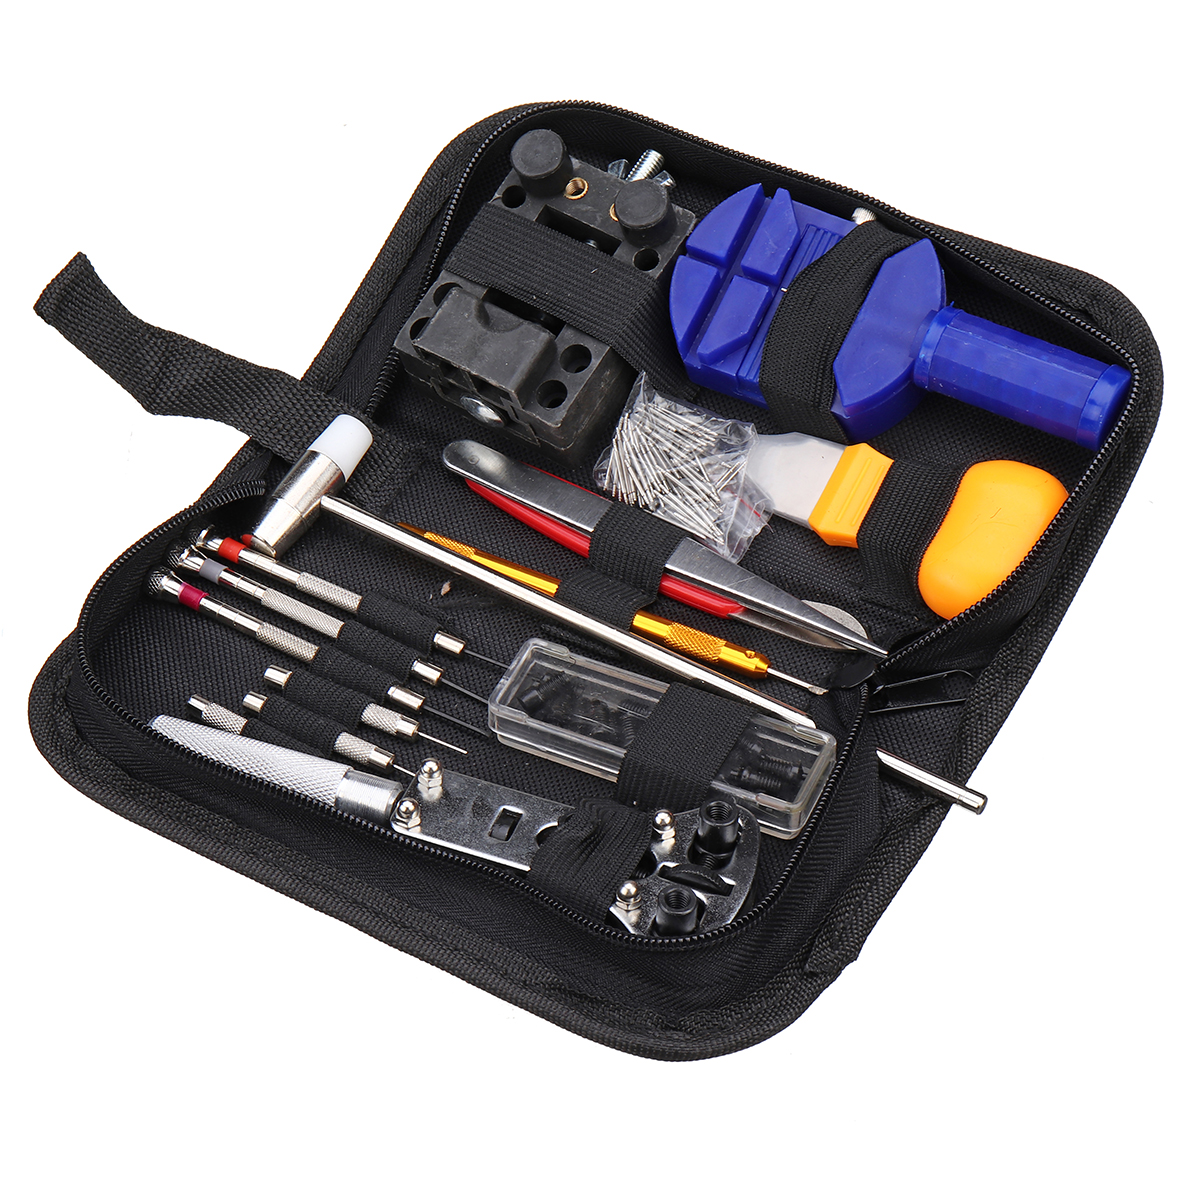 147Pcs Watch Repair Tools Kit Case Opener Watchmaker Tool with storage bag